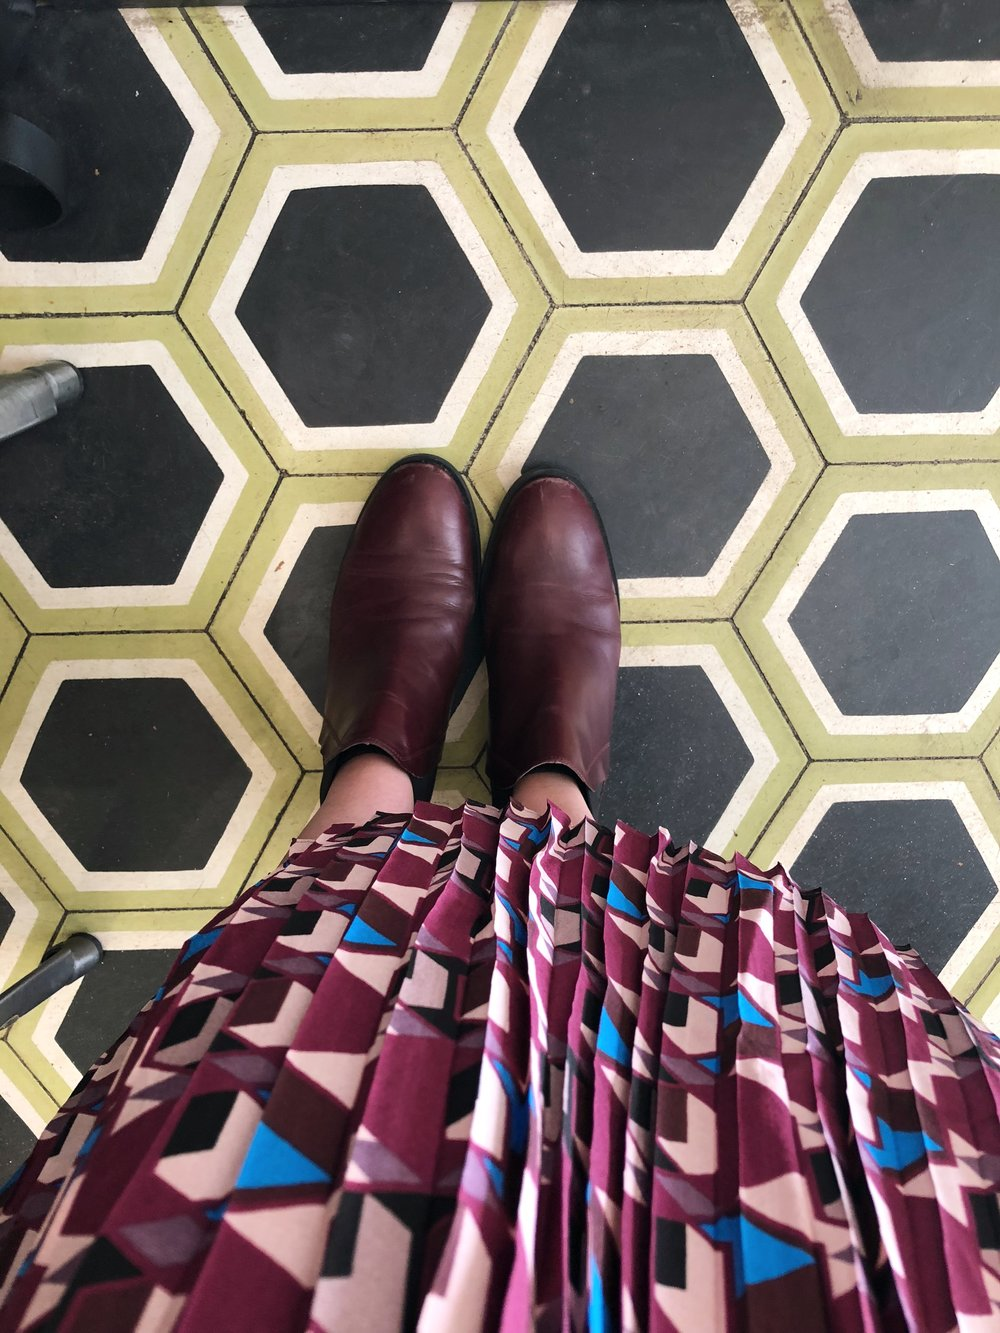 These tiles were to die for, plus they went well with my skirt!